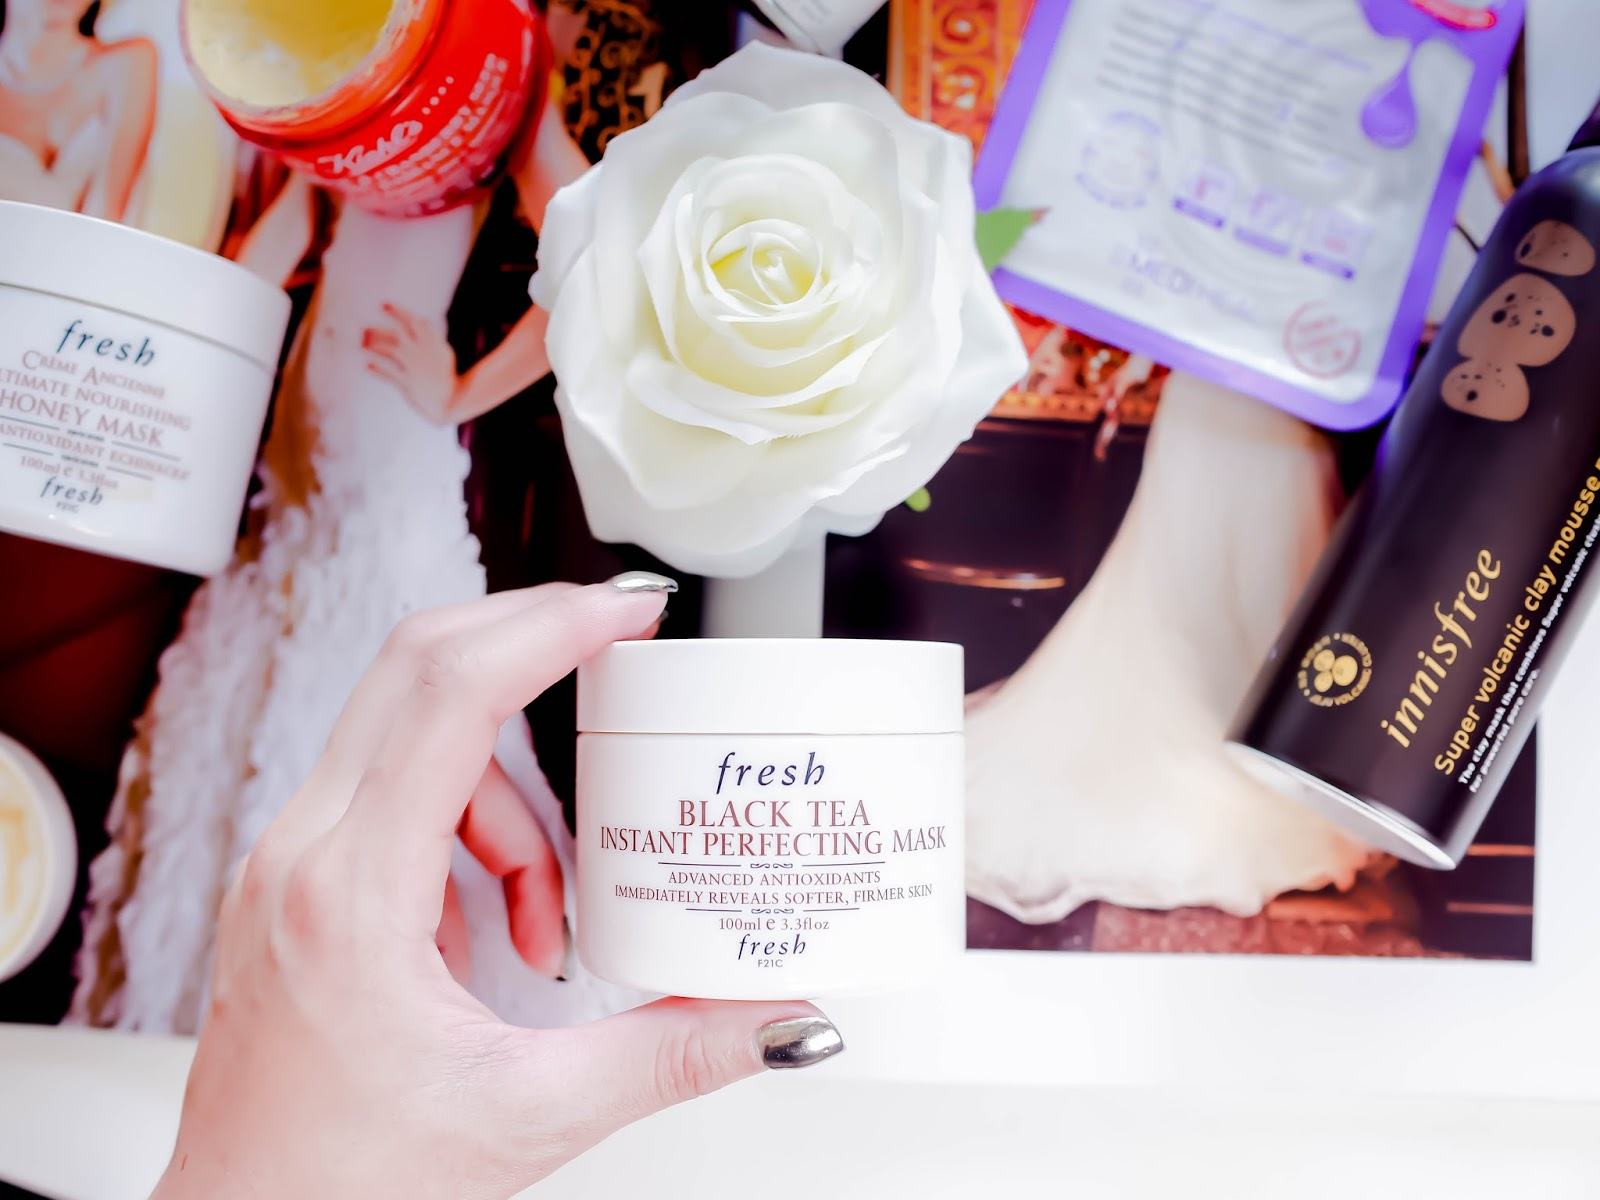 fresh black tea instant perfecting mask, review, singapore